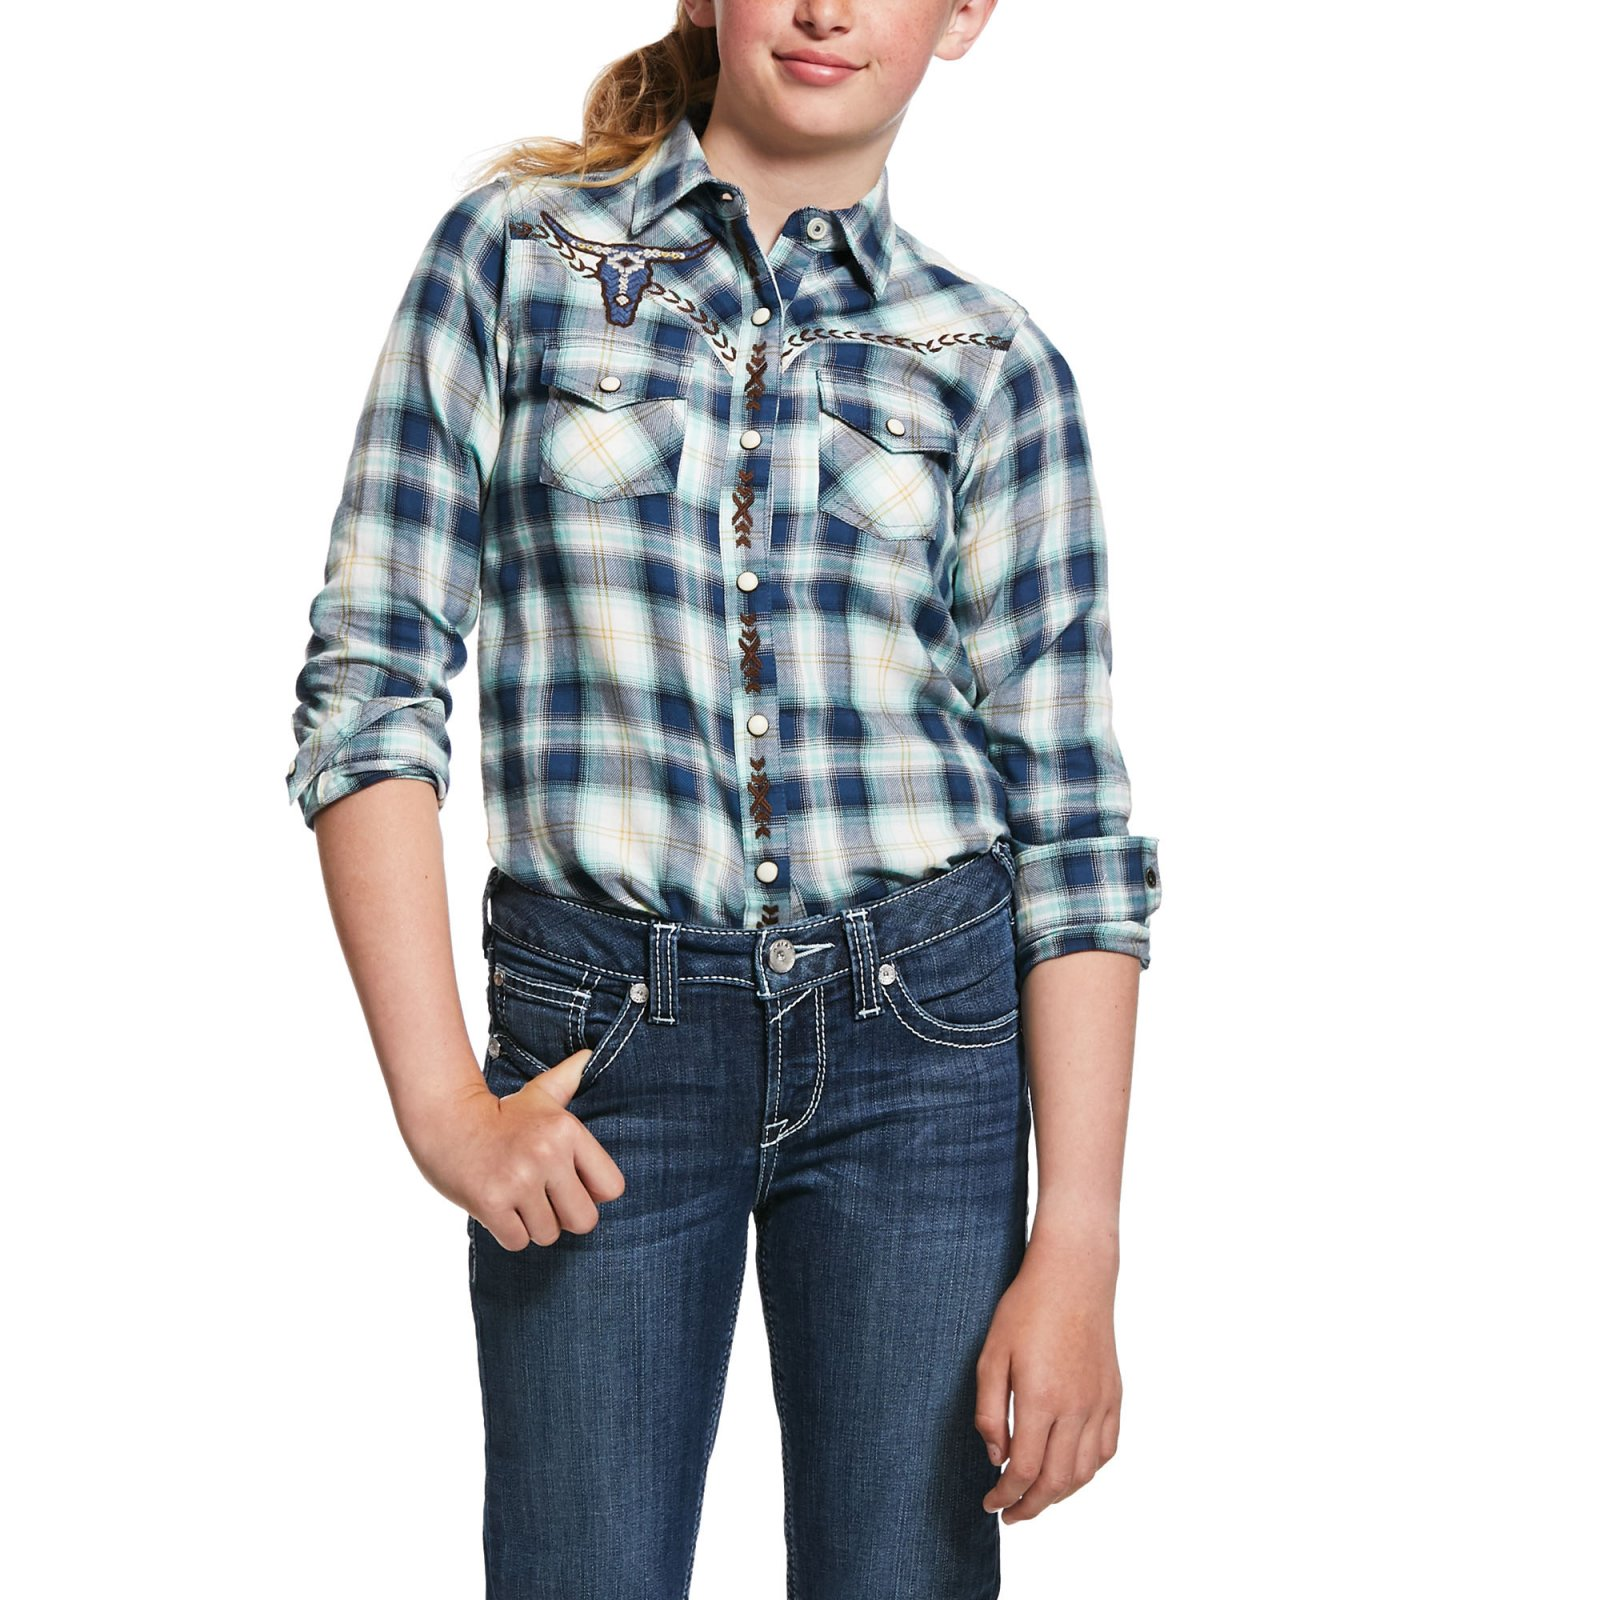 Girls R.E.A.L. Integrity Shirt from Ariat